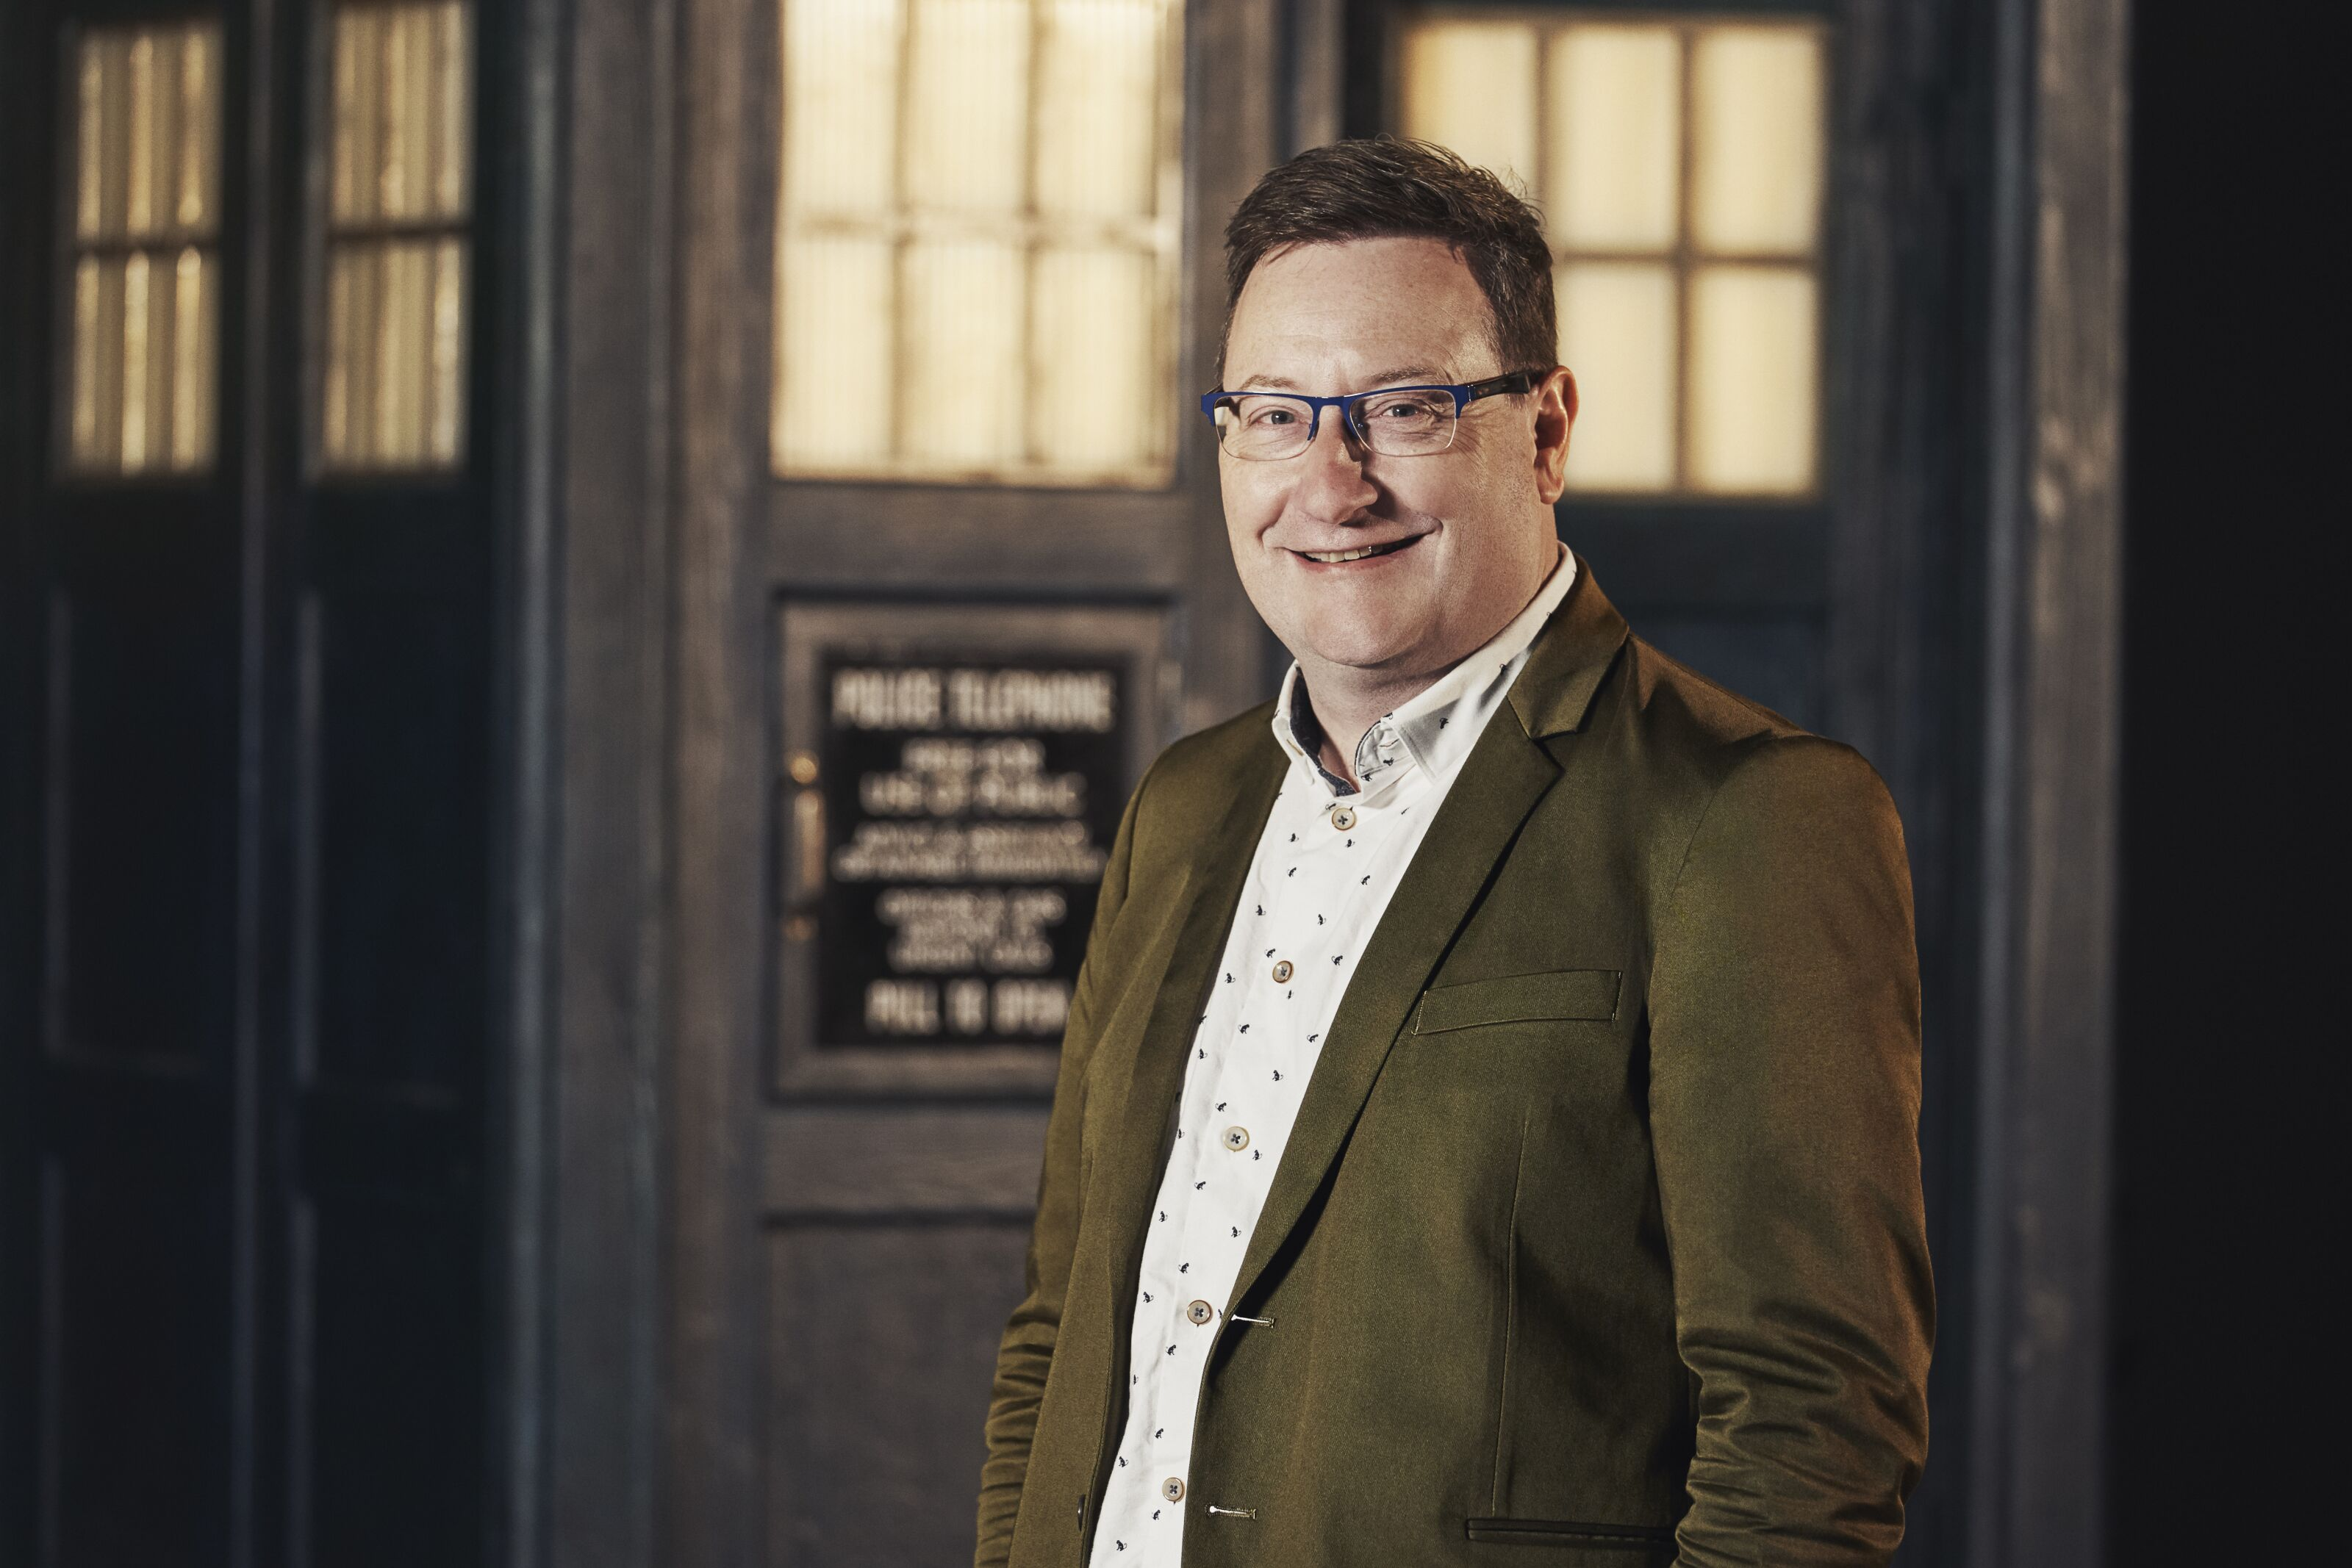 Torchwood news: Chris Chibnall confirms who could bring back the series